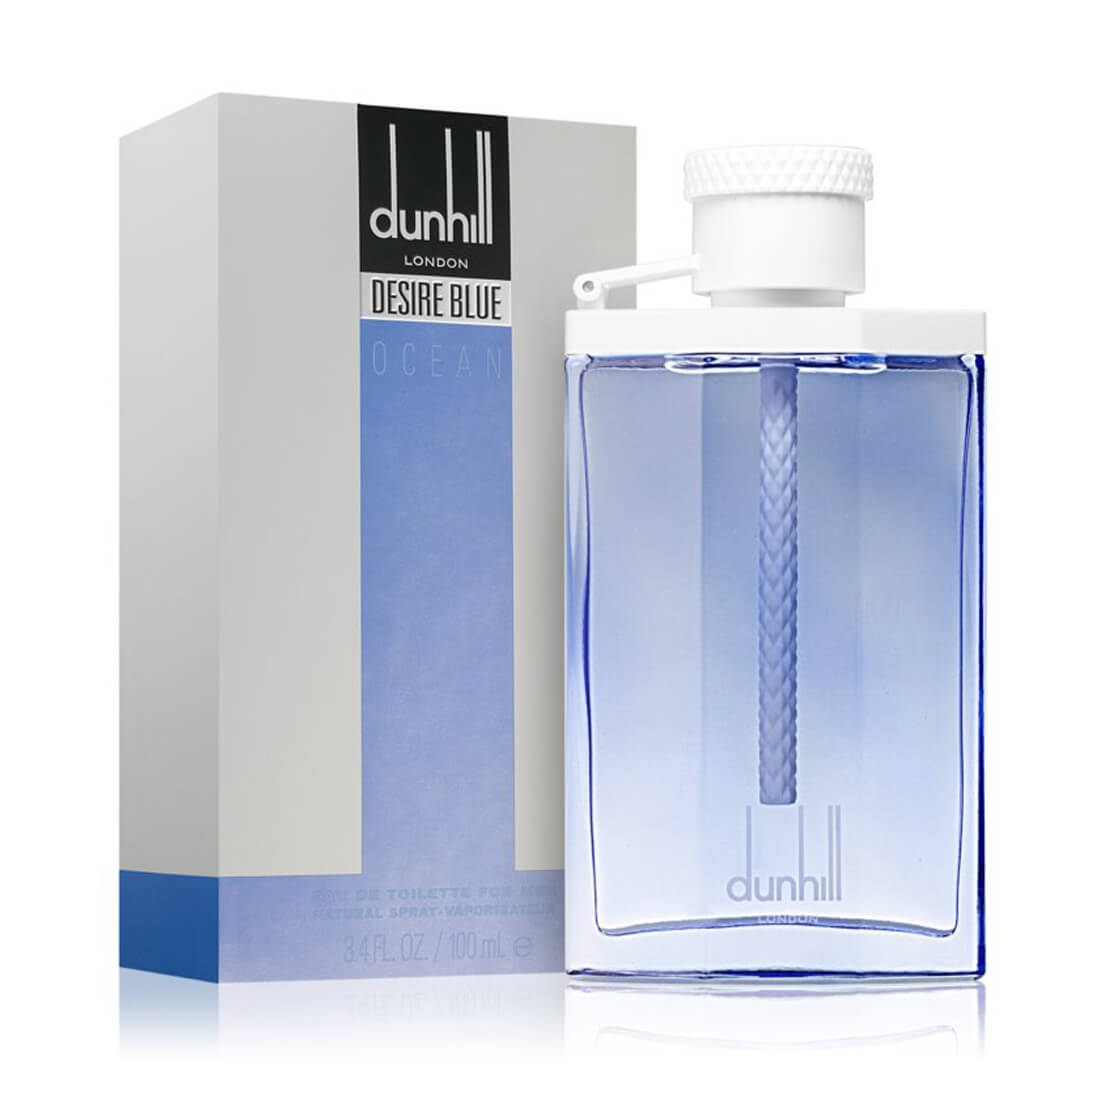 Dunhill Desire Blue Ocean Eau De Toilette For Men 100ml